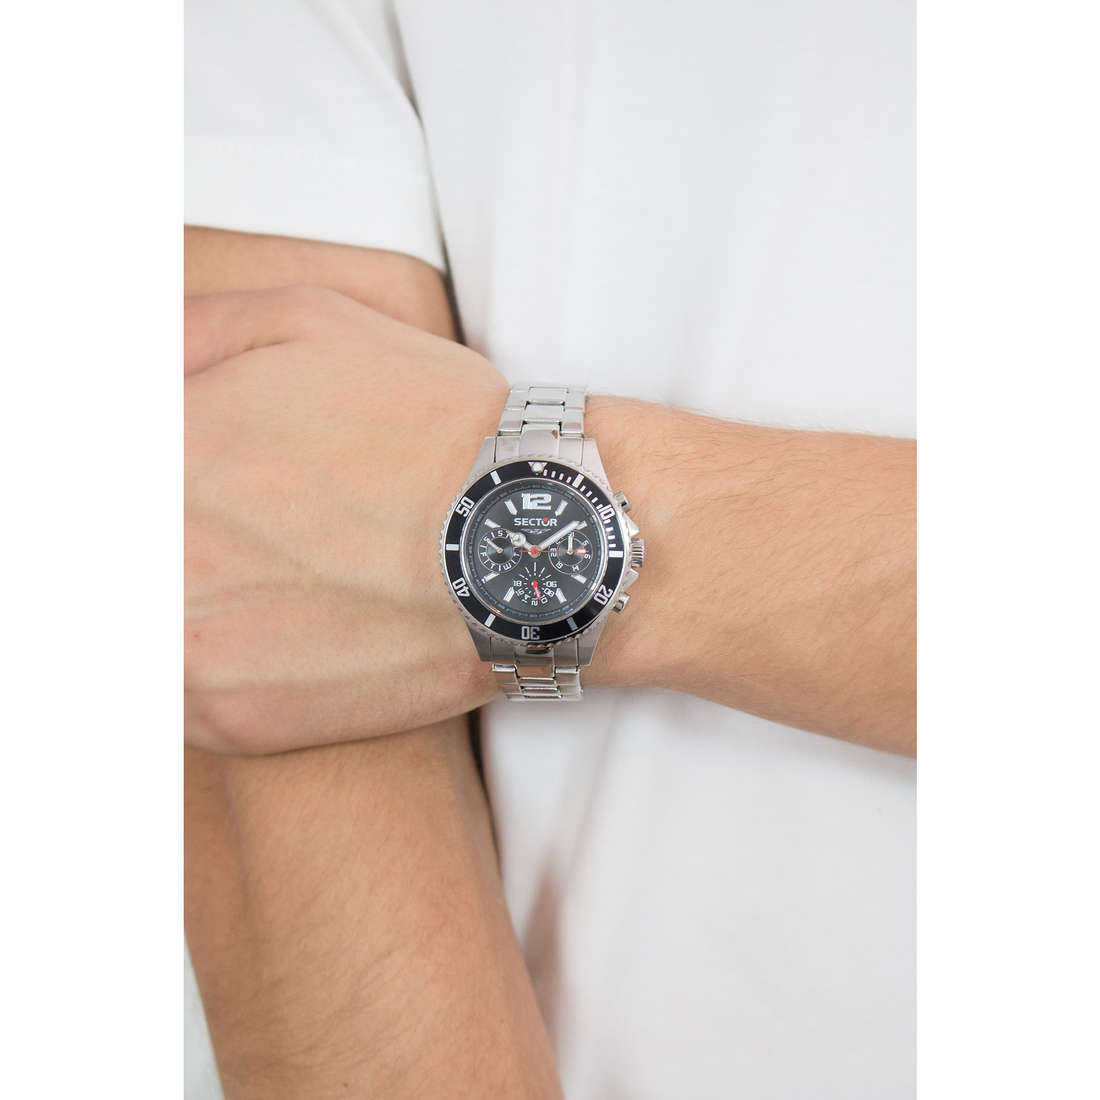 Sector chronographes 230 homme R3253161011 photo wearing